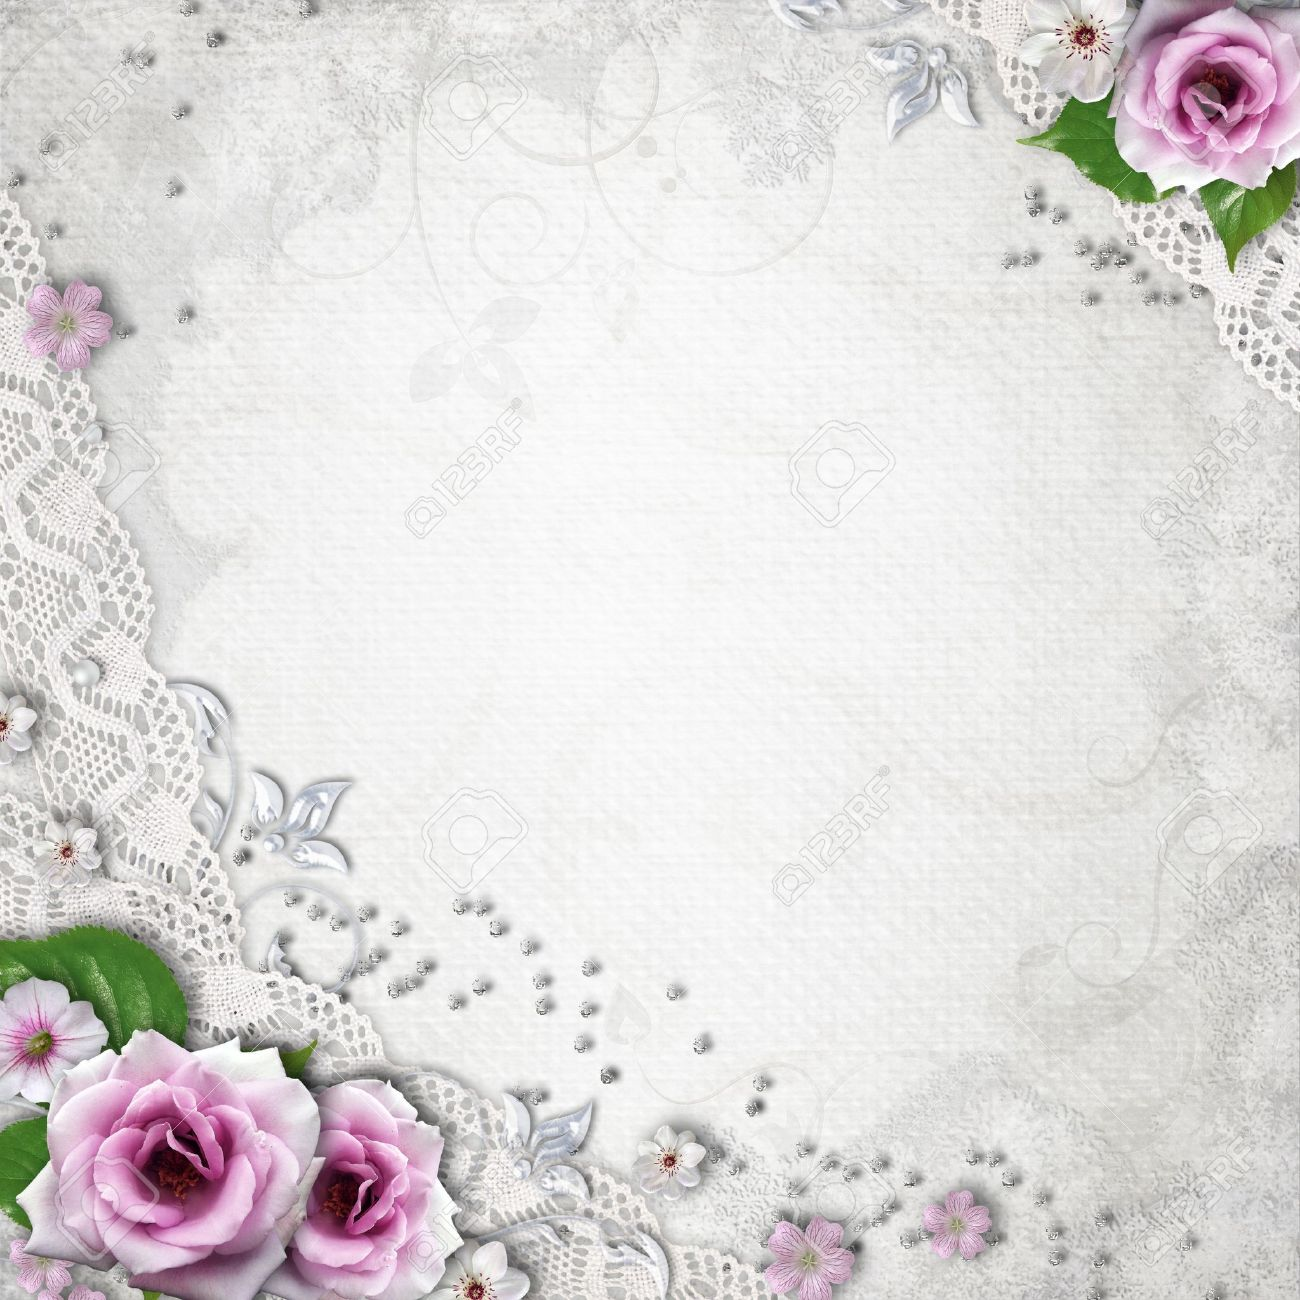 Elegance Wedding Background Stock Photo Picture And Royalty Free